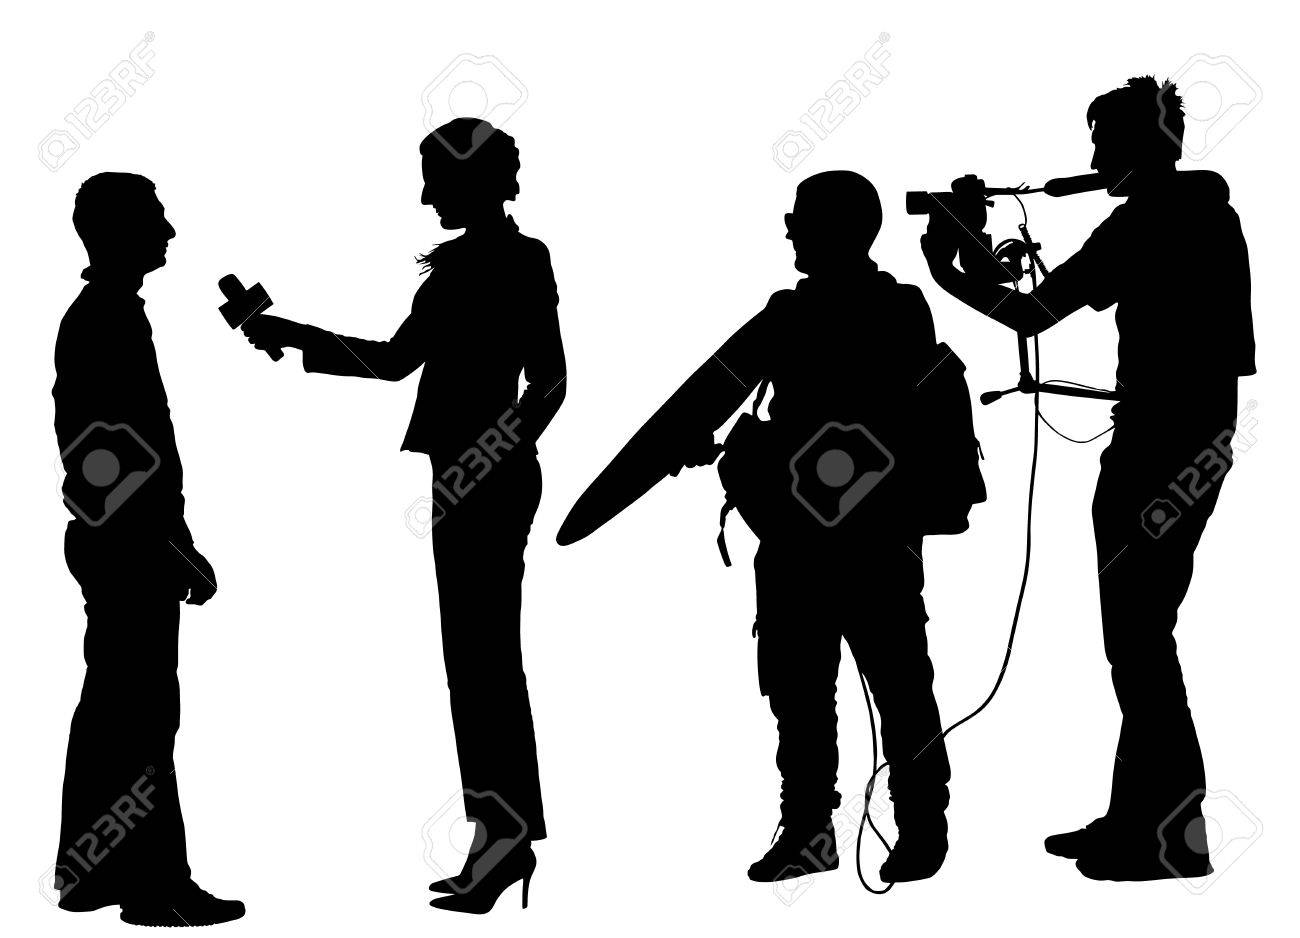 Journalist News Reporter Interview with camera crew vector silhouette illustration isolated on white background. - 60865271